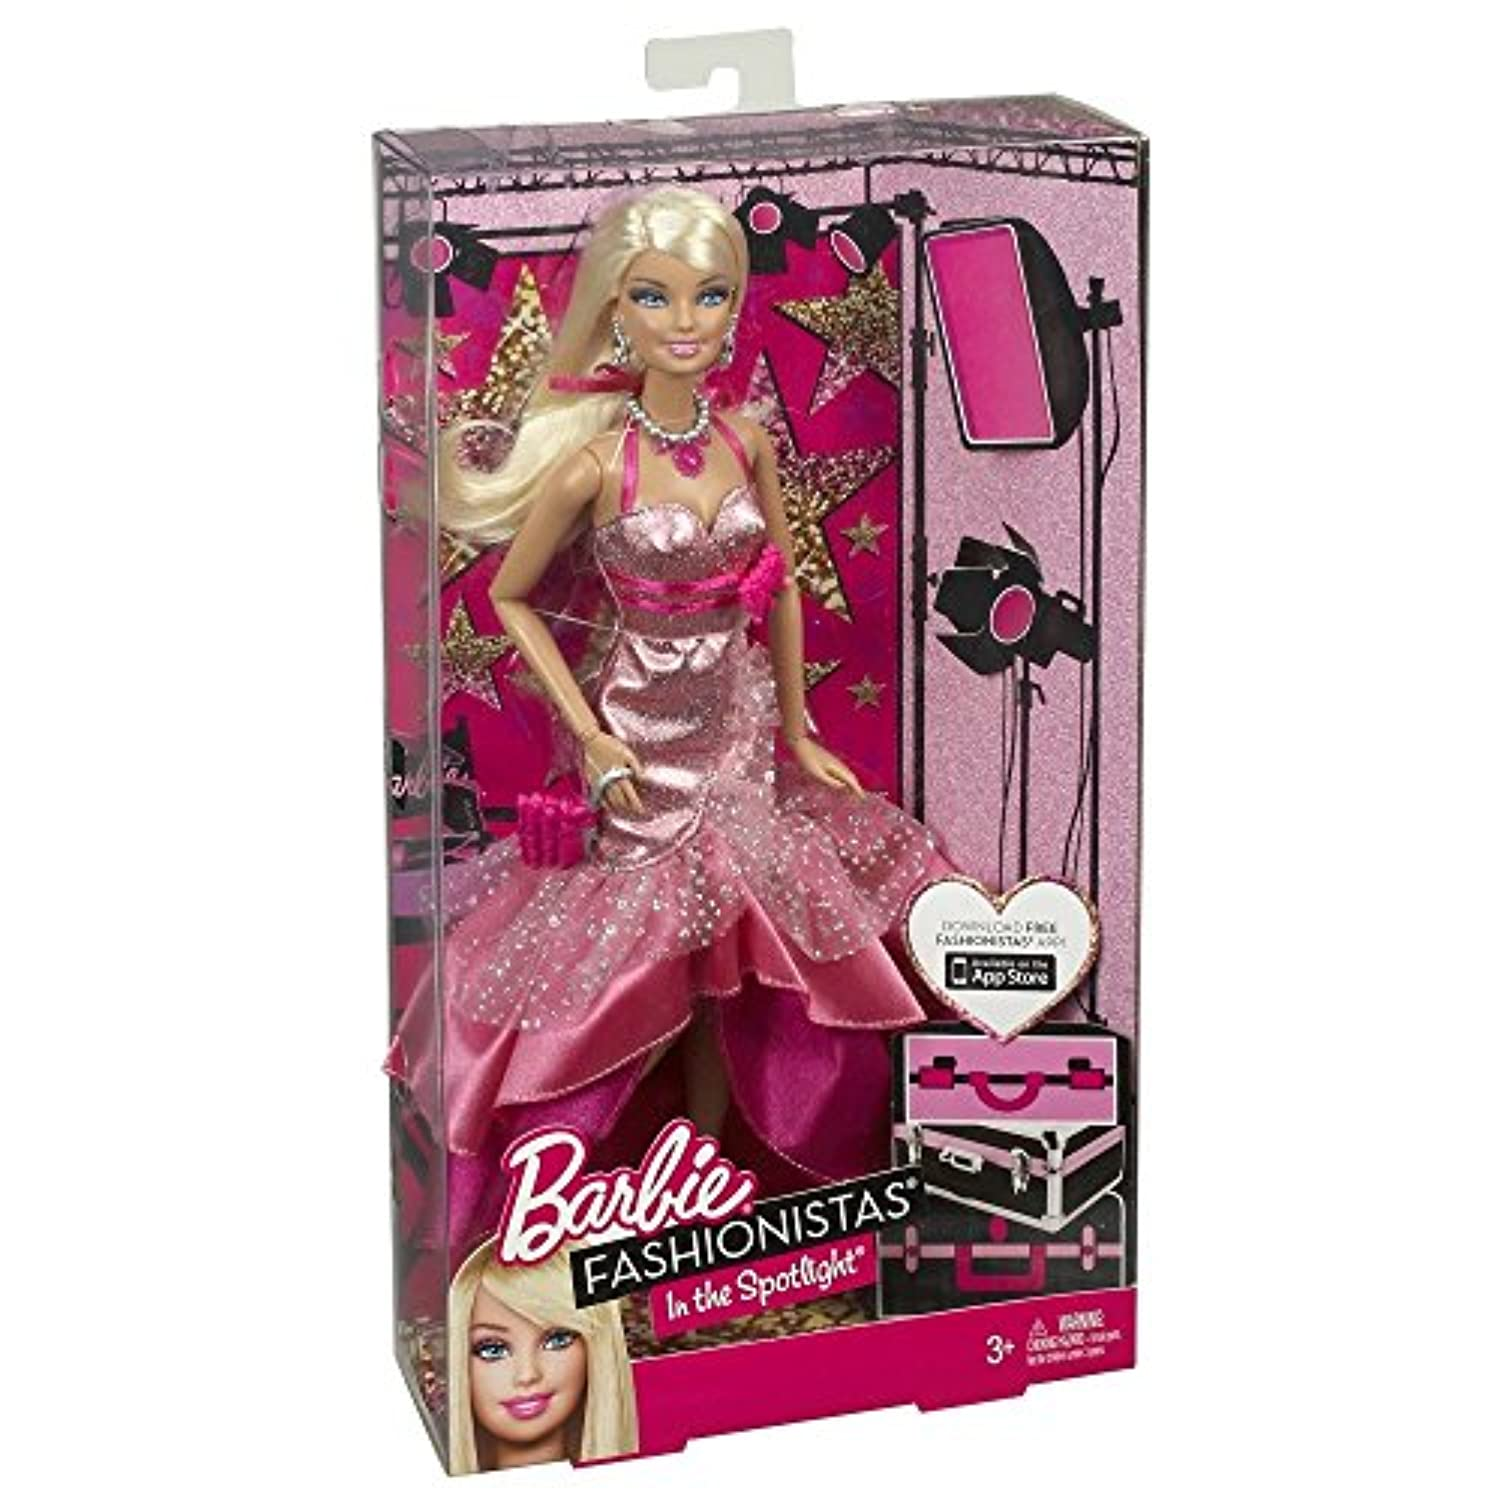 Barbie Fashionistas in The Spotlight Gown Doll, Pink by Barbie